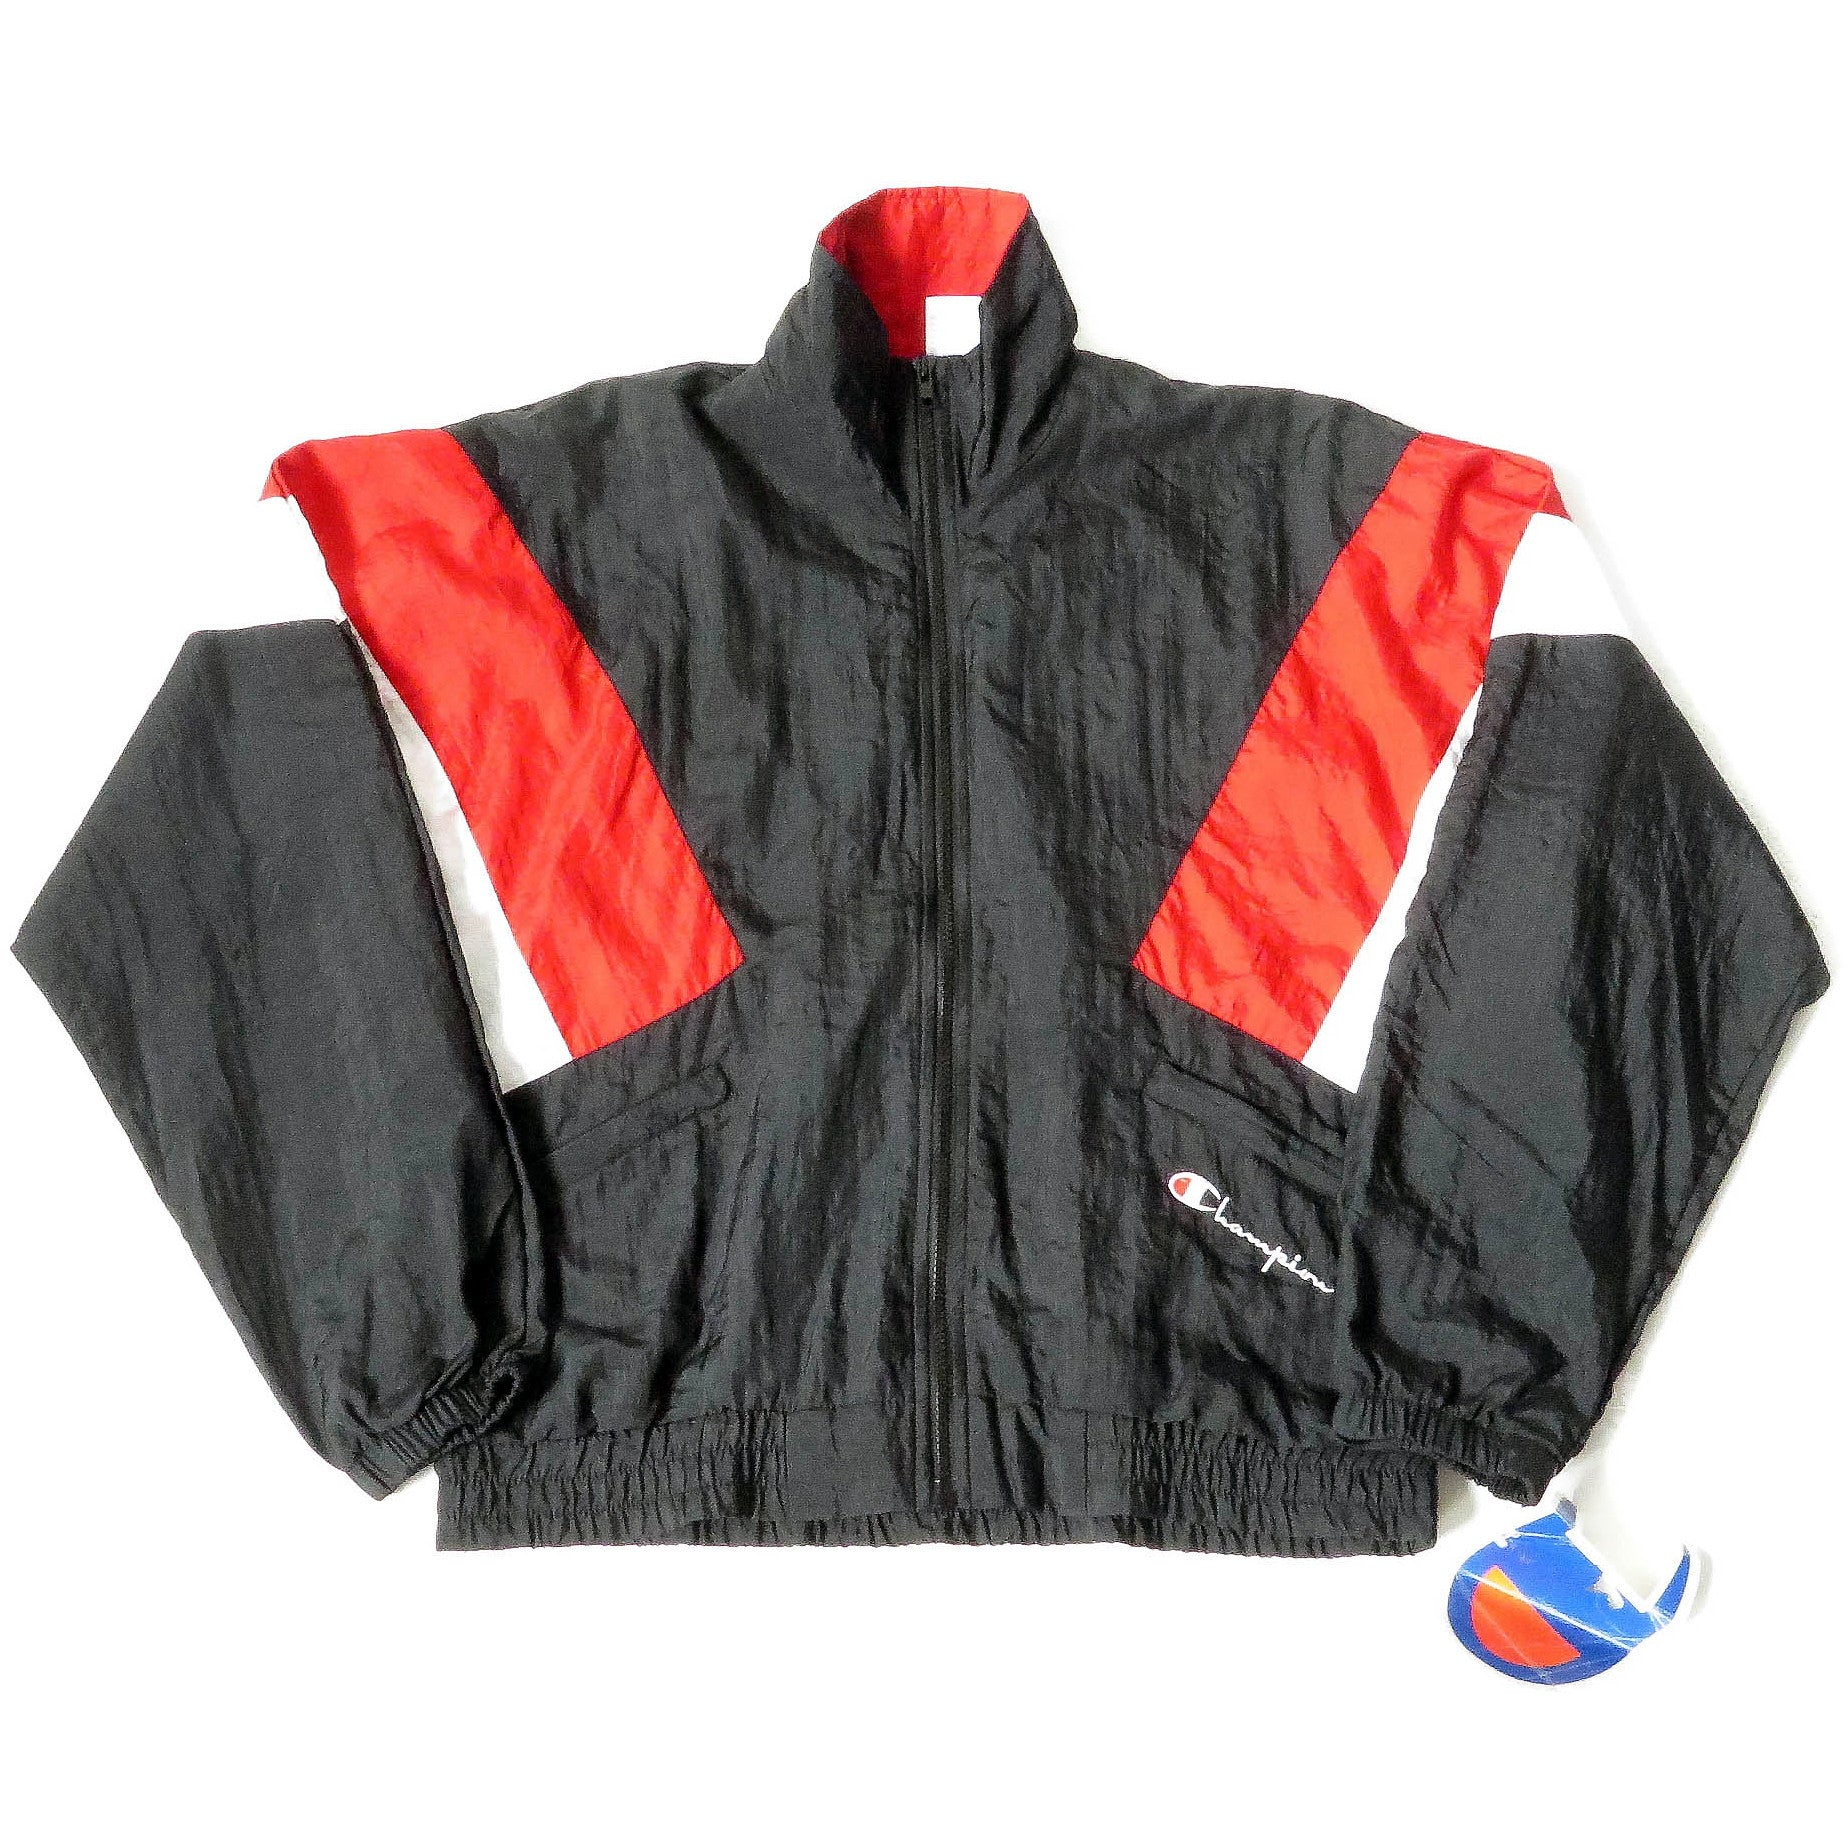 Vintage Champion Windbreaker Jacket Sz S